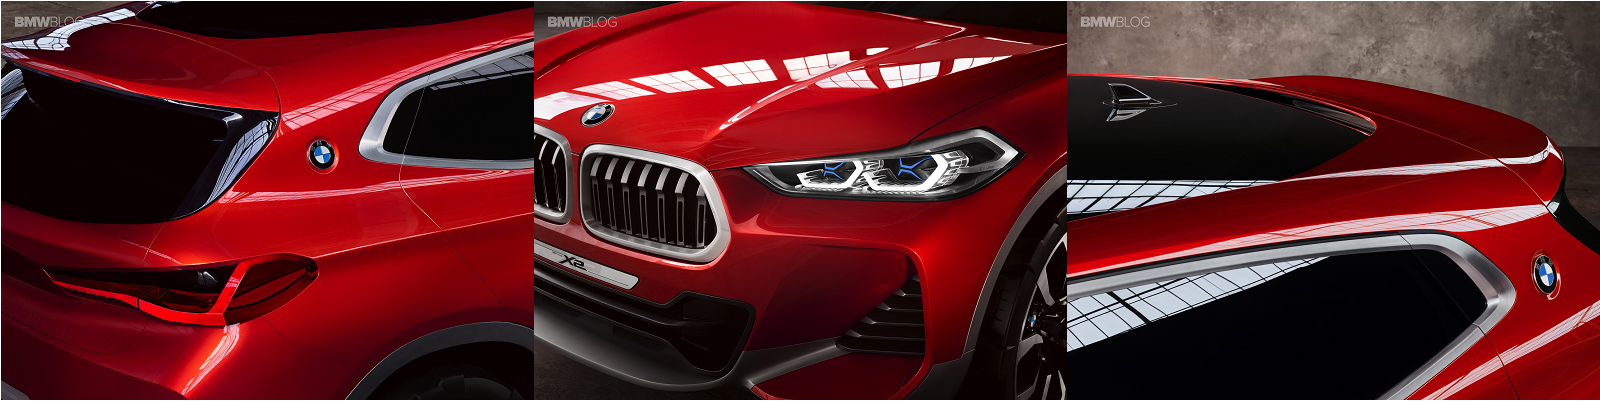 bmw-x2-concept-detail-design